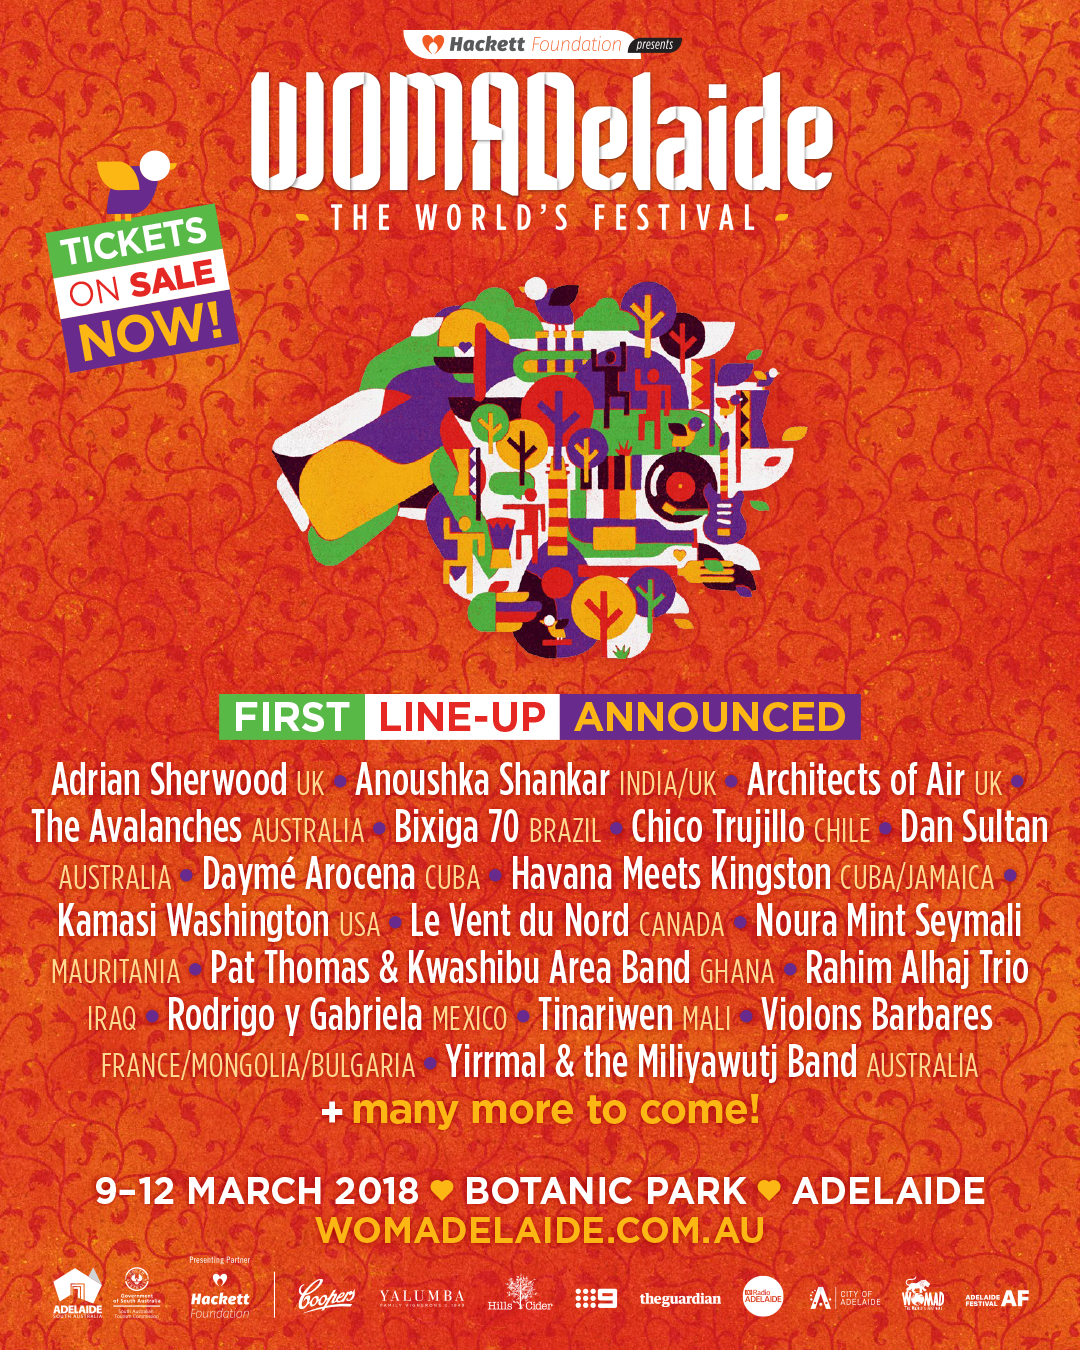 WOMADelaide 2018 - 1st Lineup